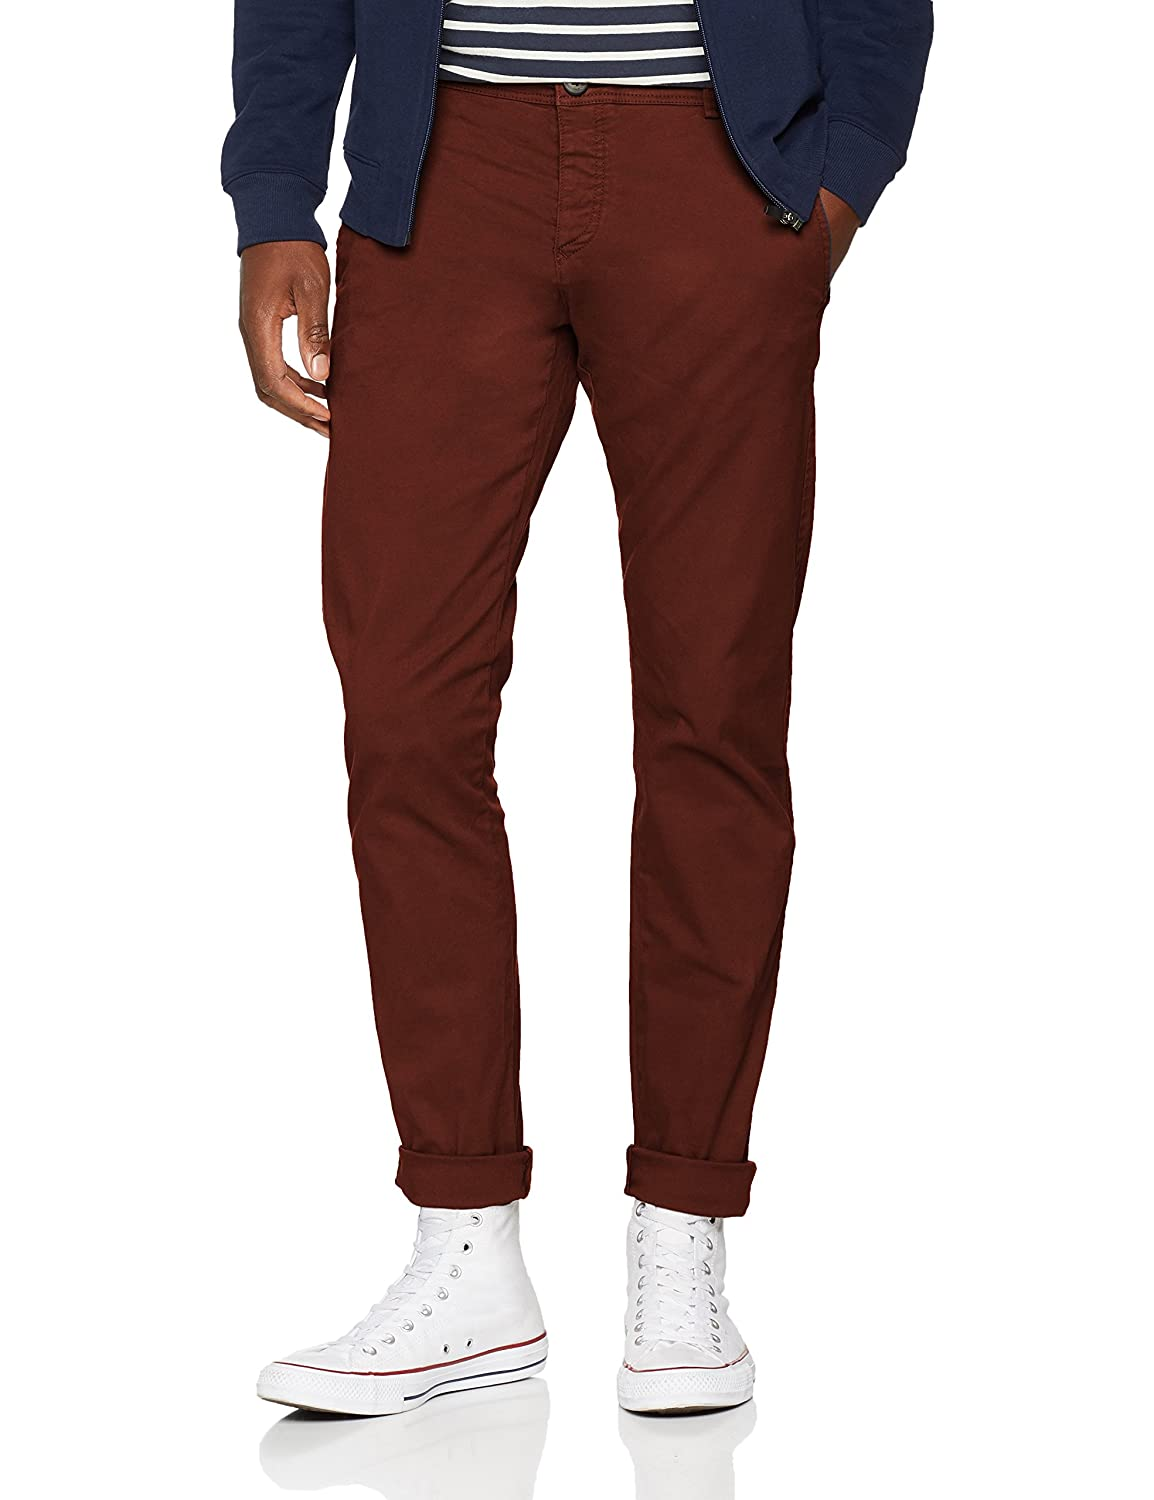 TALLA 29W / 32L. SELECTED HOMME Slhskinny-Luca B. Chocolate Pants W Noos, Pantalones para Hombre